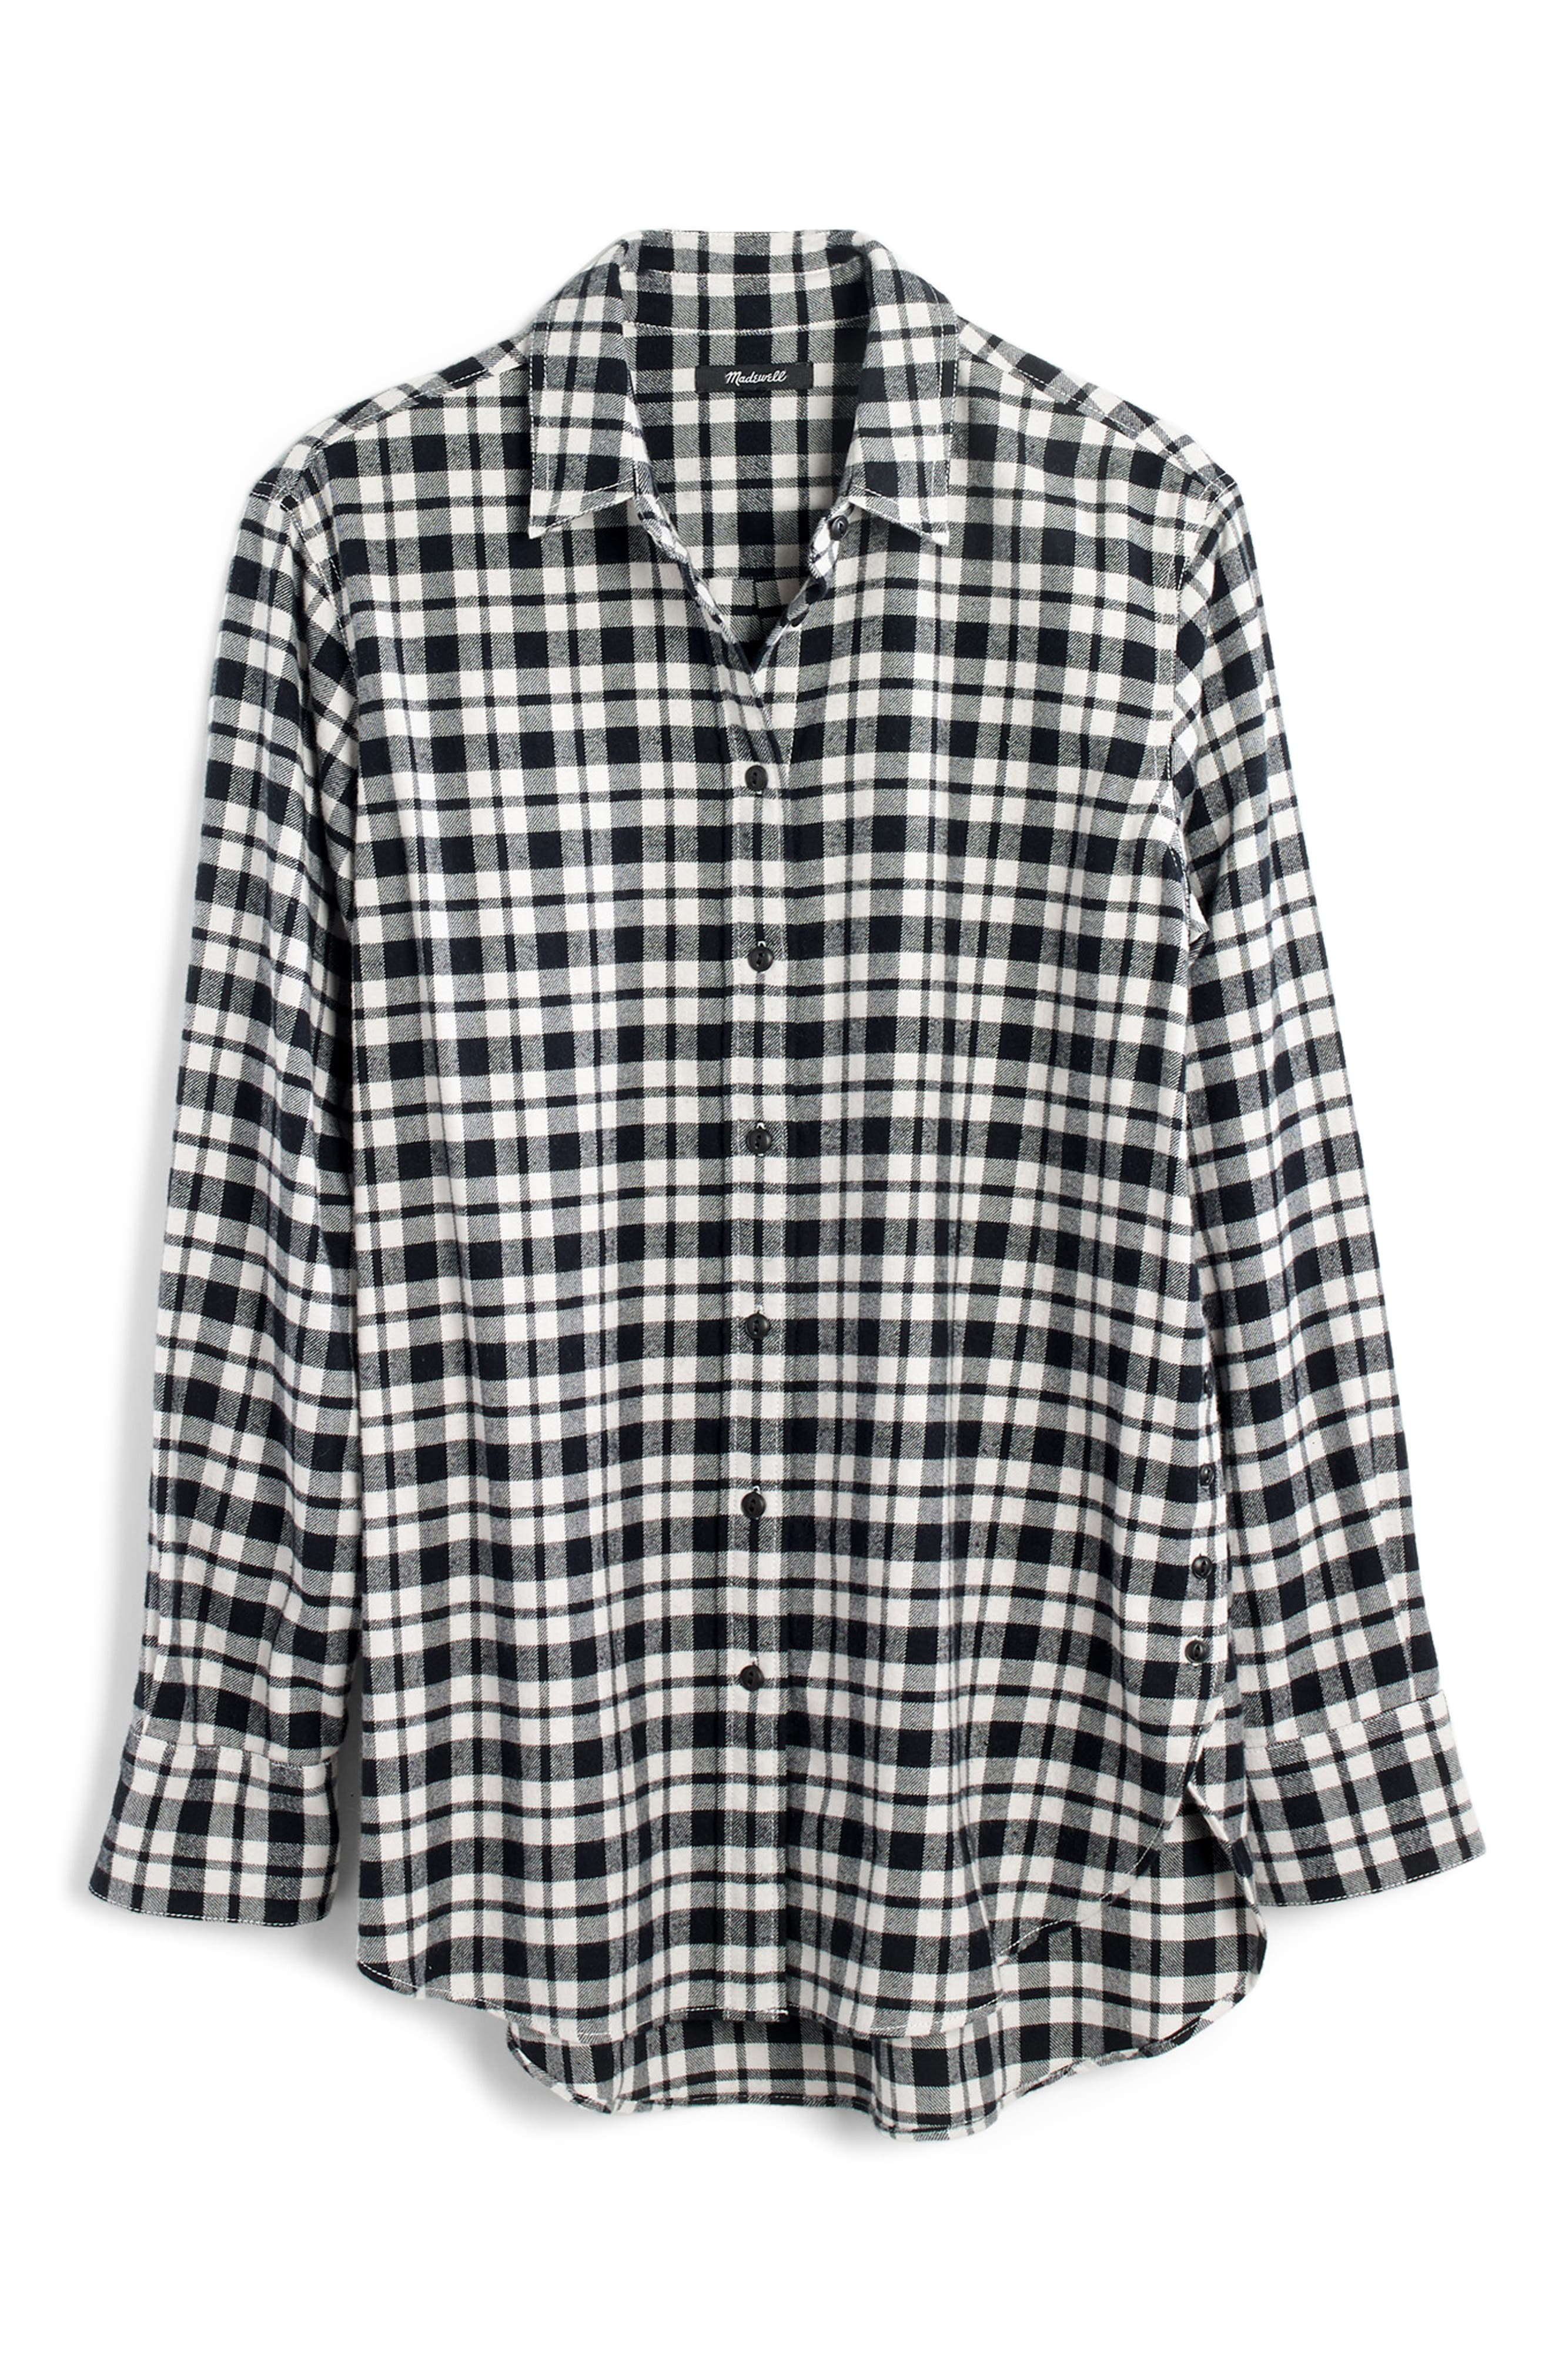 MADEWELL, Oversize Flannel Shirt, Alternate thumbnail 6, color, 002